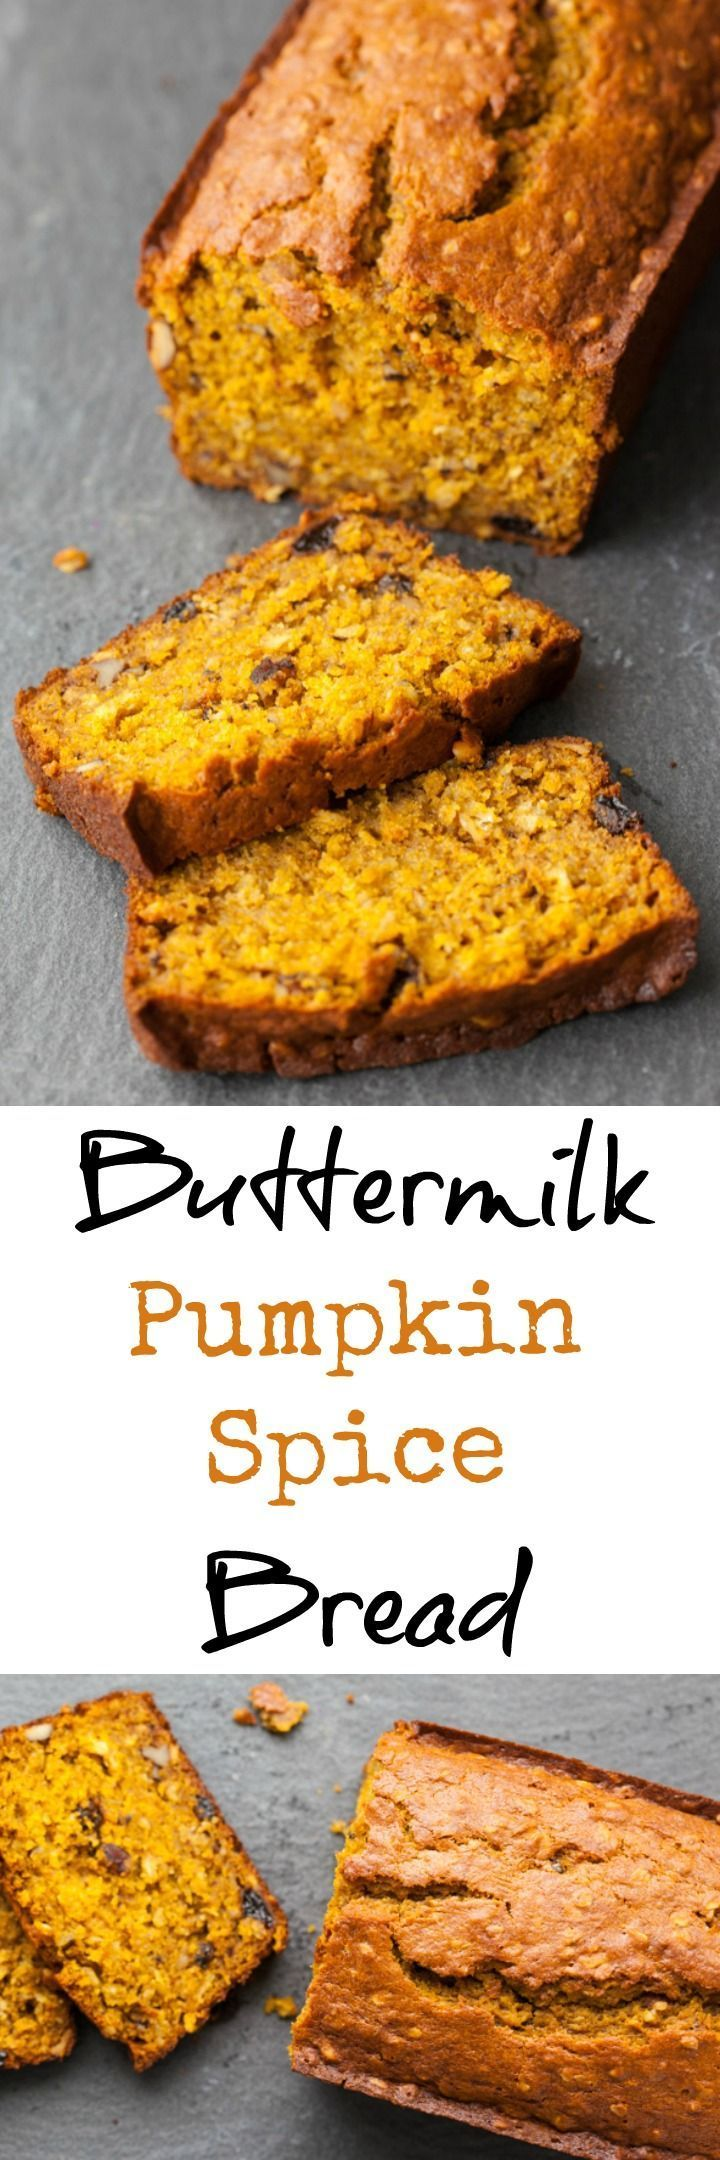 The BEST moist and healthy buttermilk pumpkin spice bread recipe that is packed with both flavor and nutrition!   pinchmysalt.com